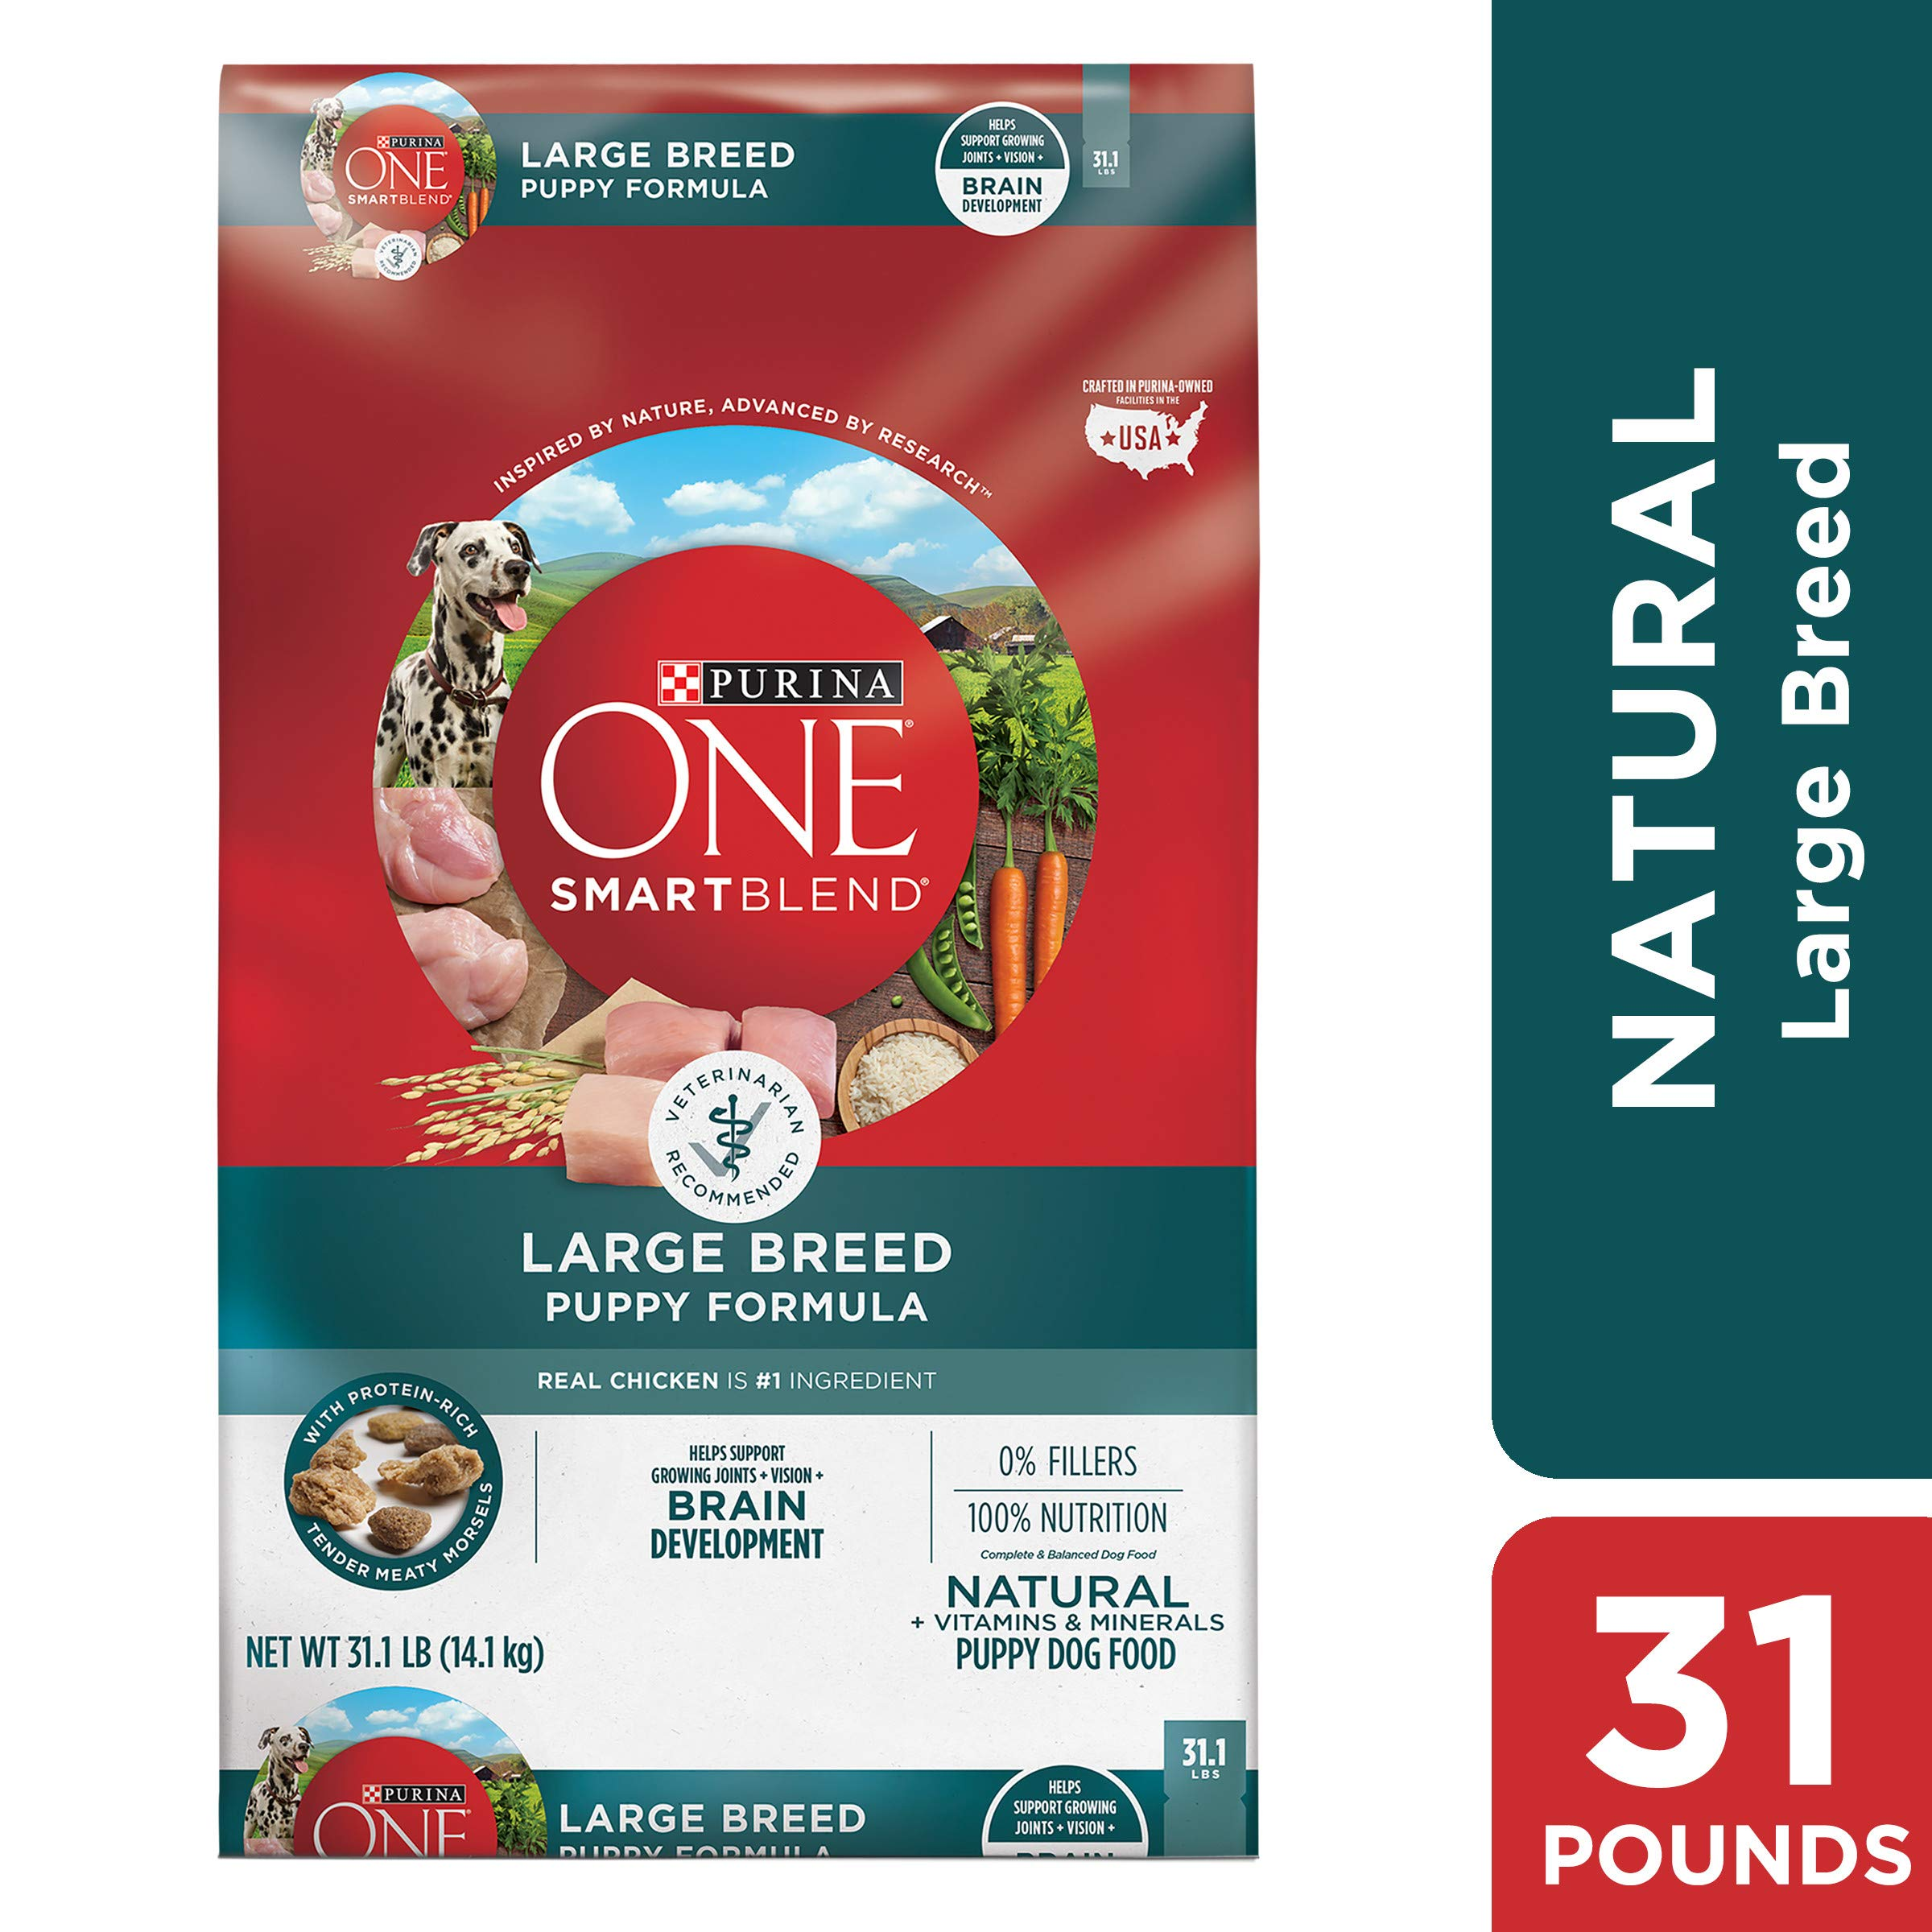 Purina ONE Natural Large Breed Dry Puppy Food, SmartBlend Large Breed Puppy Formula - 31.1 lb. Bag by Purina ONE